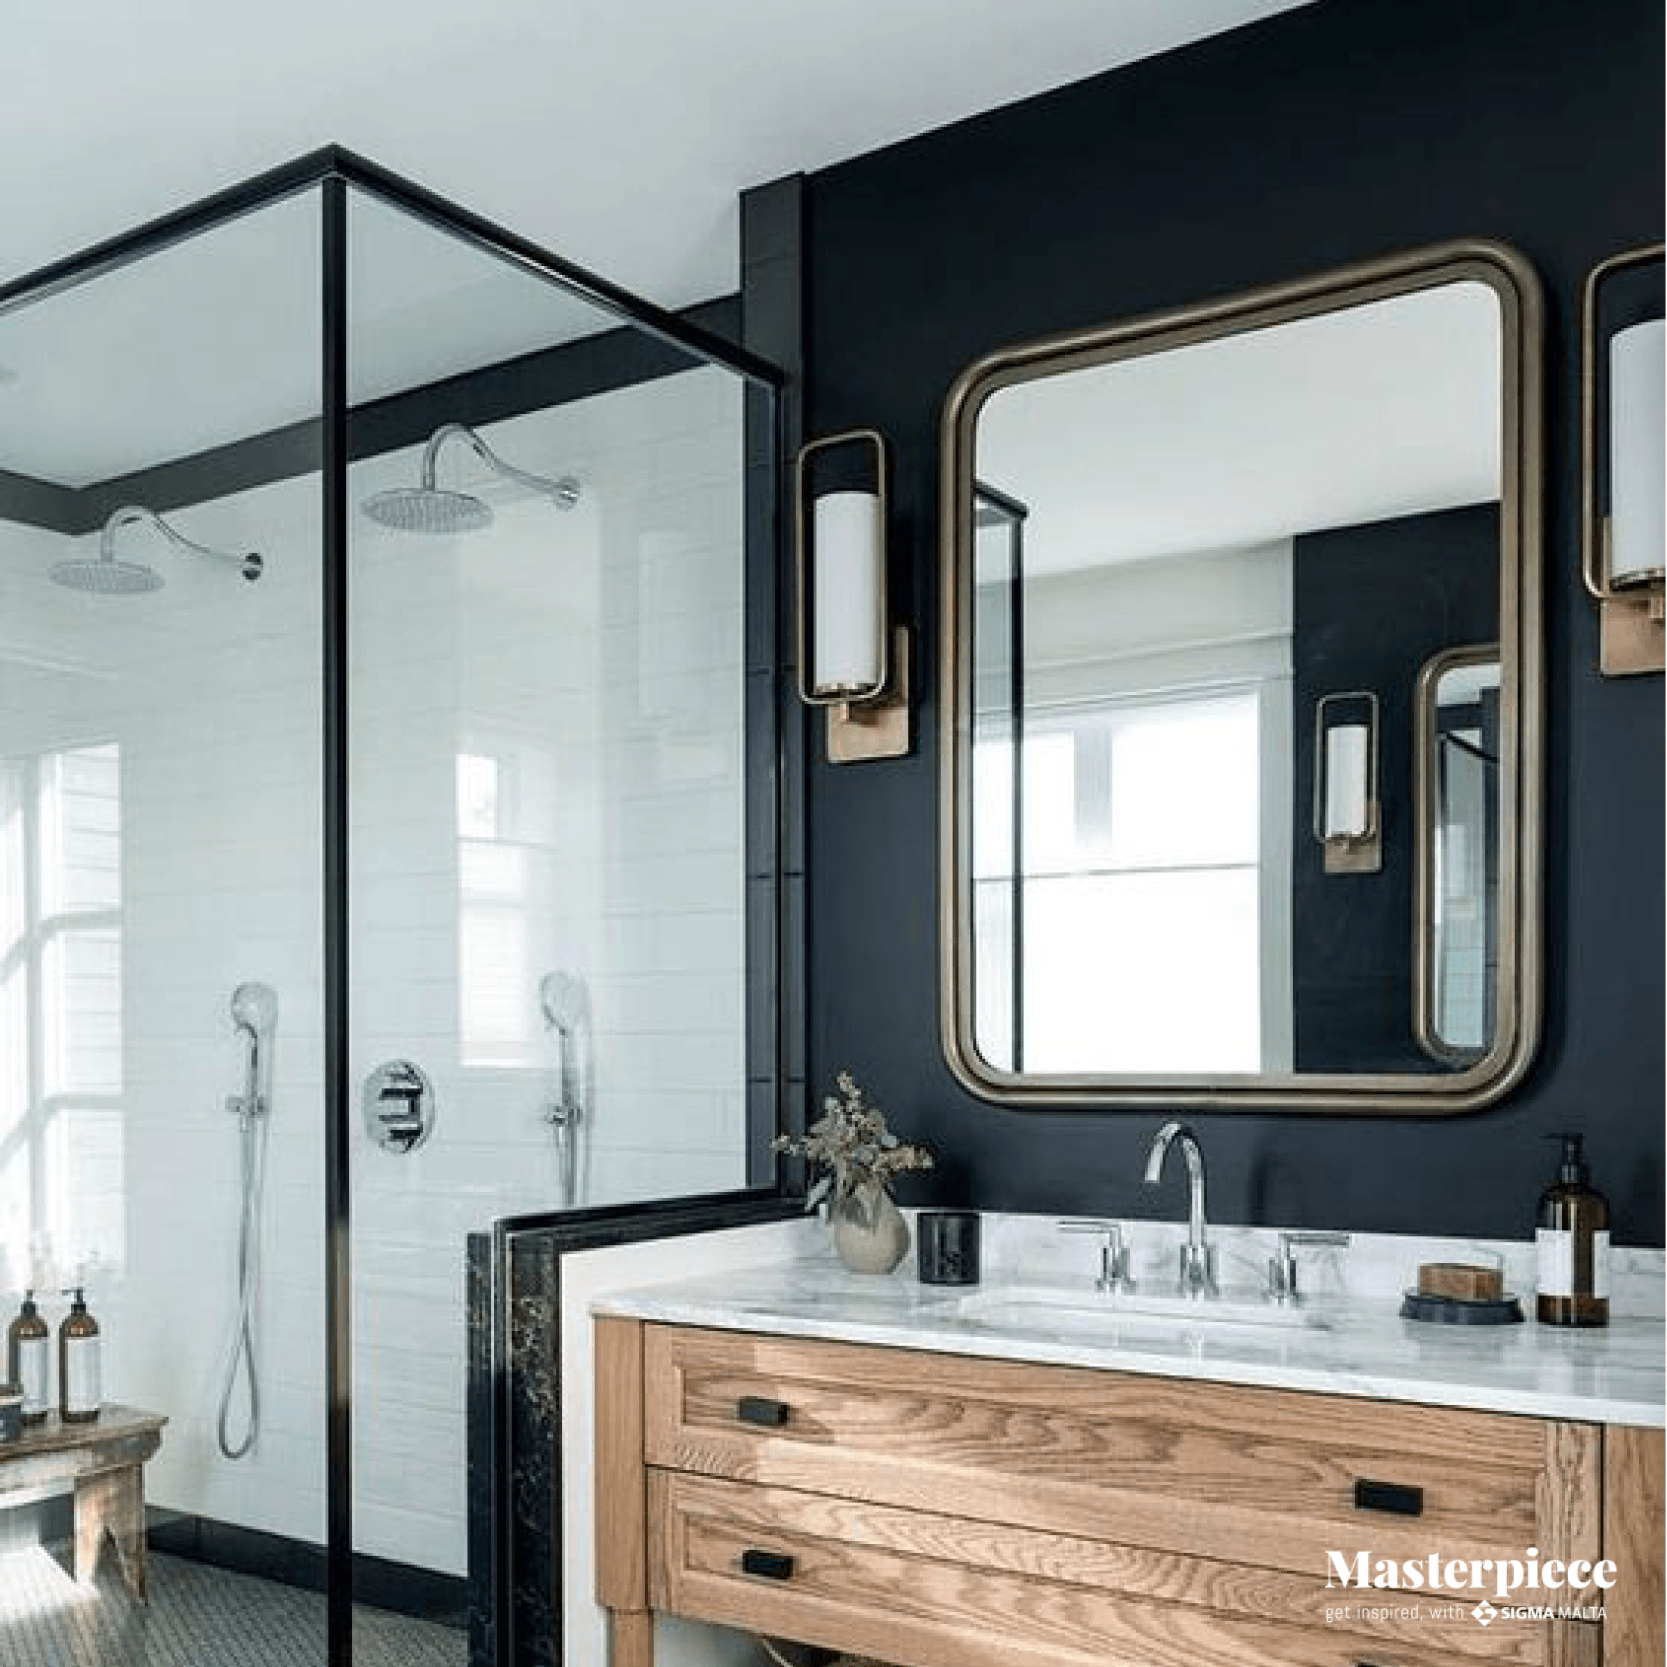 Black walls </br><span> for an edgy bathroom </span>